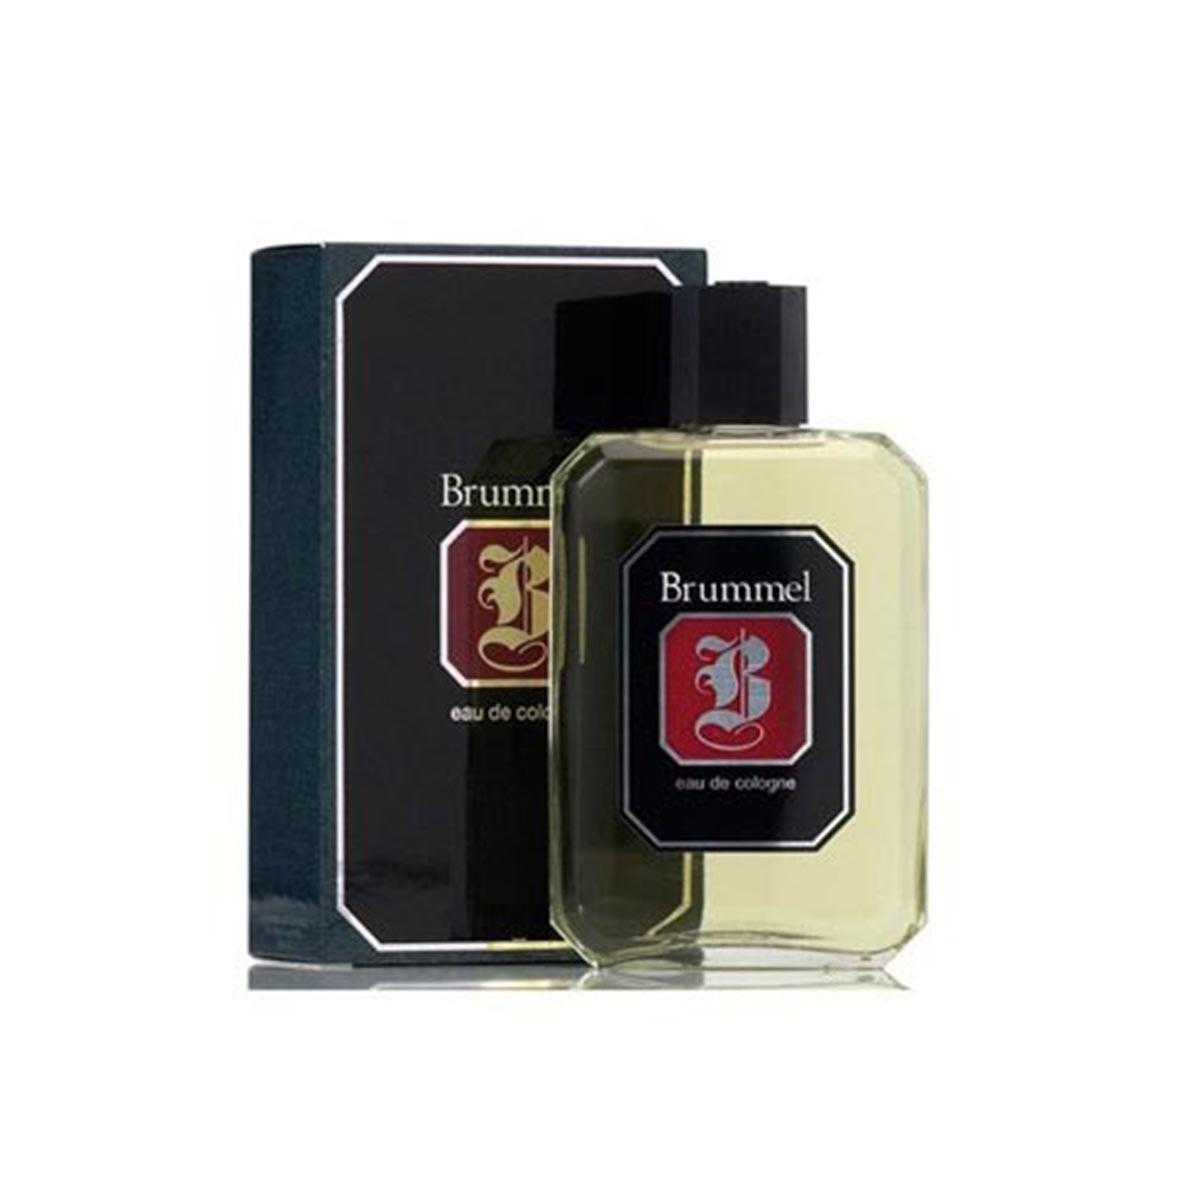 Consumo fragrances Brummel Eau De Cologne 125ml